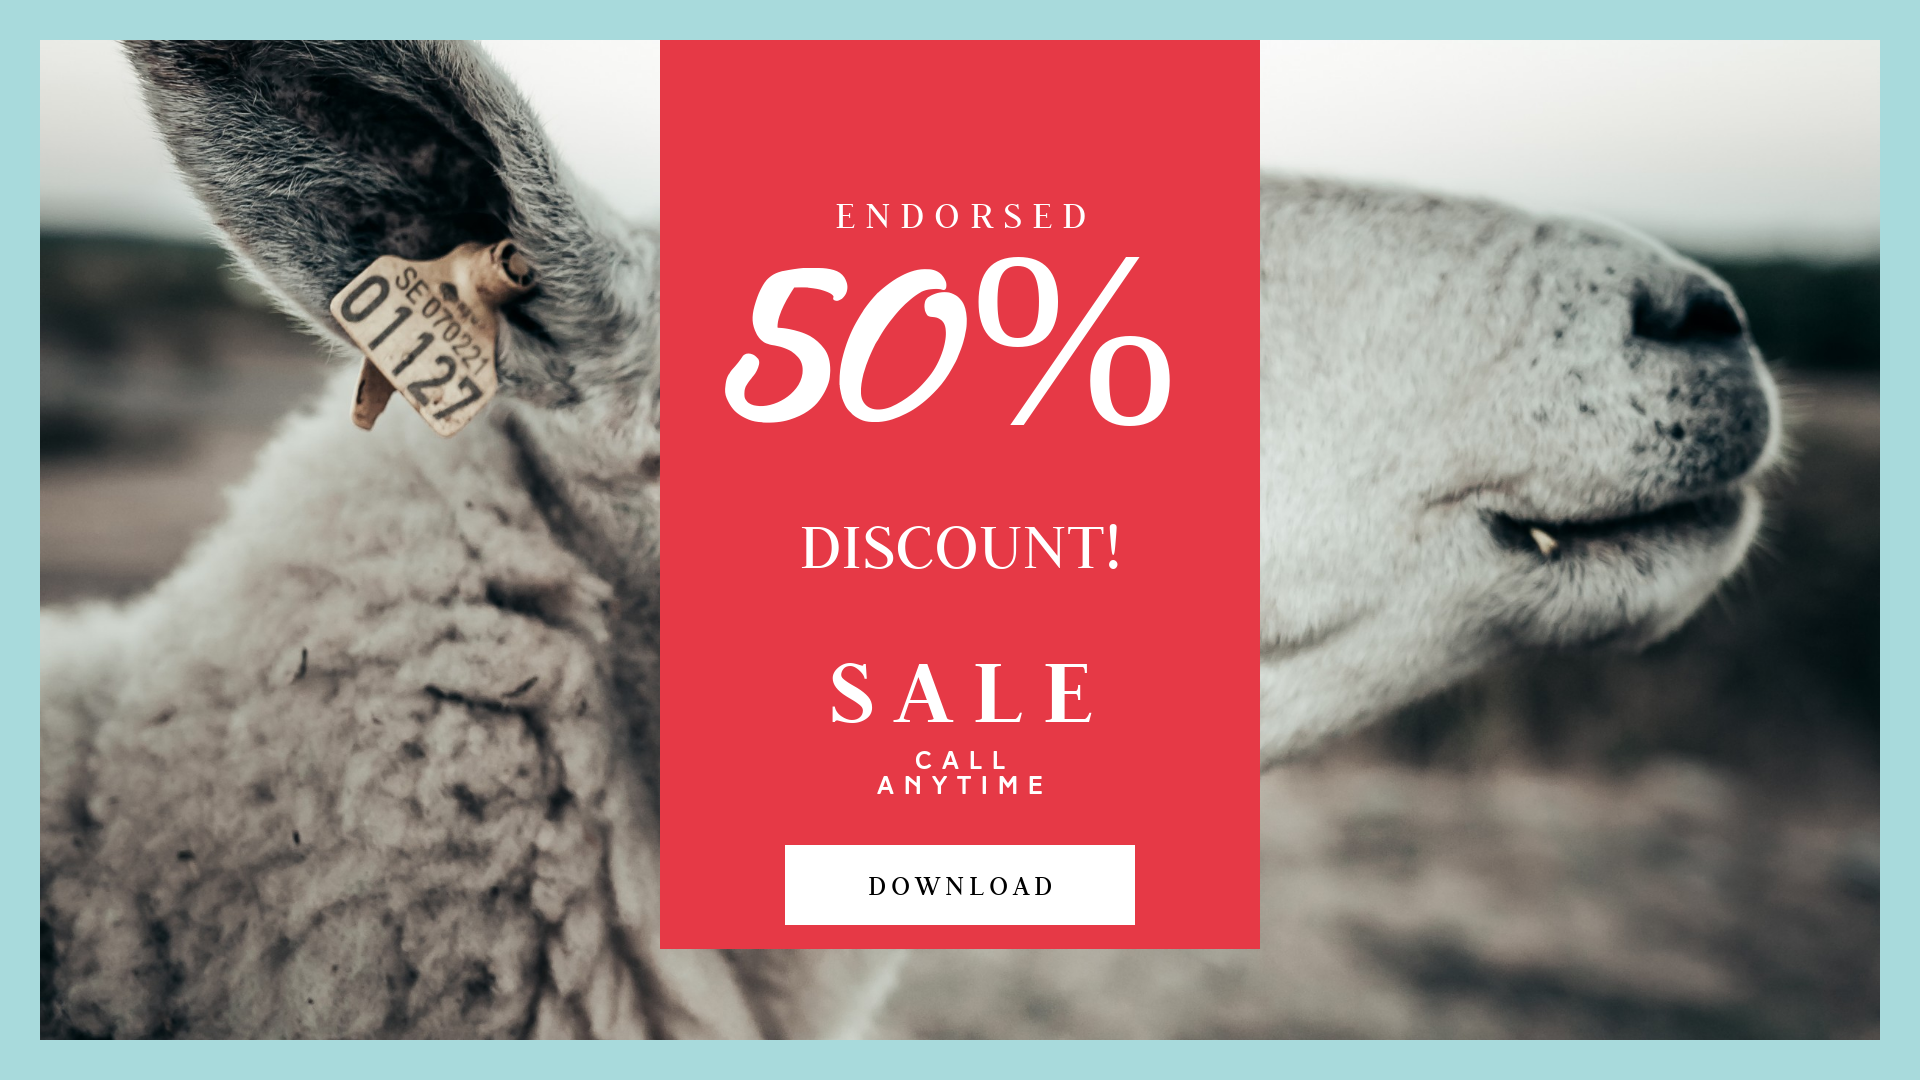 FullHD image template for sales - Design  Template